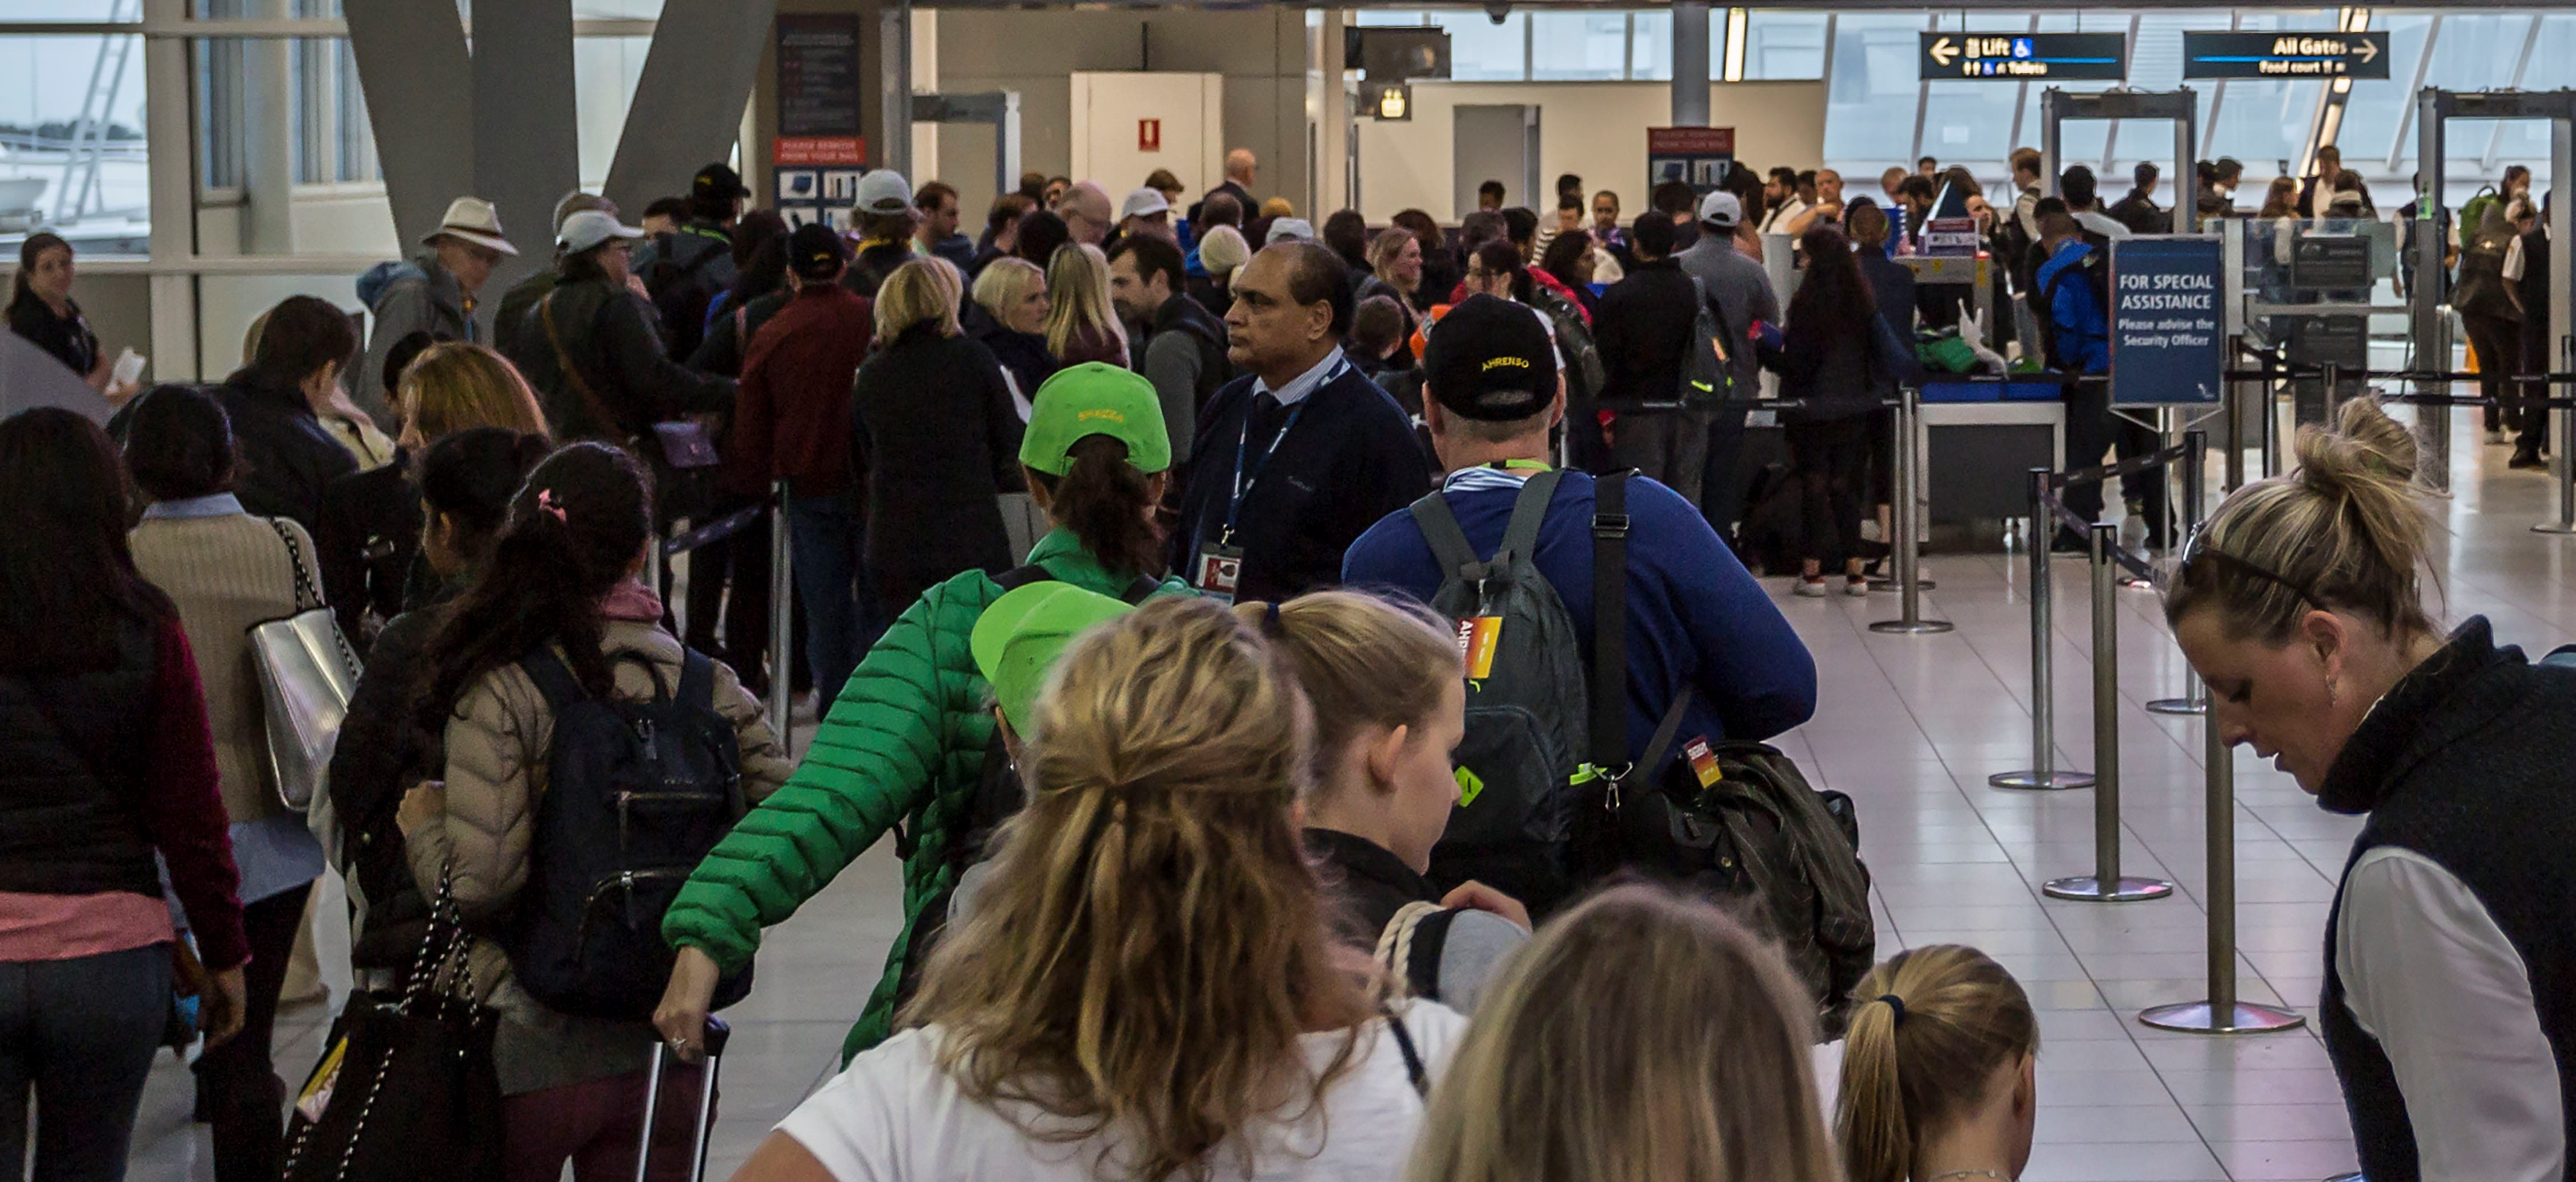 A long queue to clear security at Sydney Airport, July 2017 (Photo: Getty Images/Stringer/Brook Mitchell)